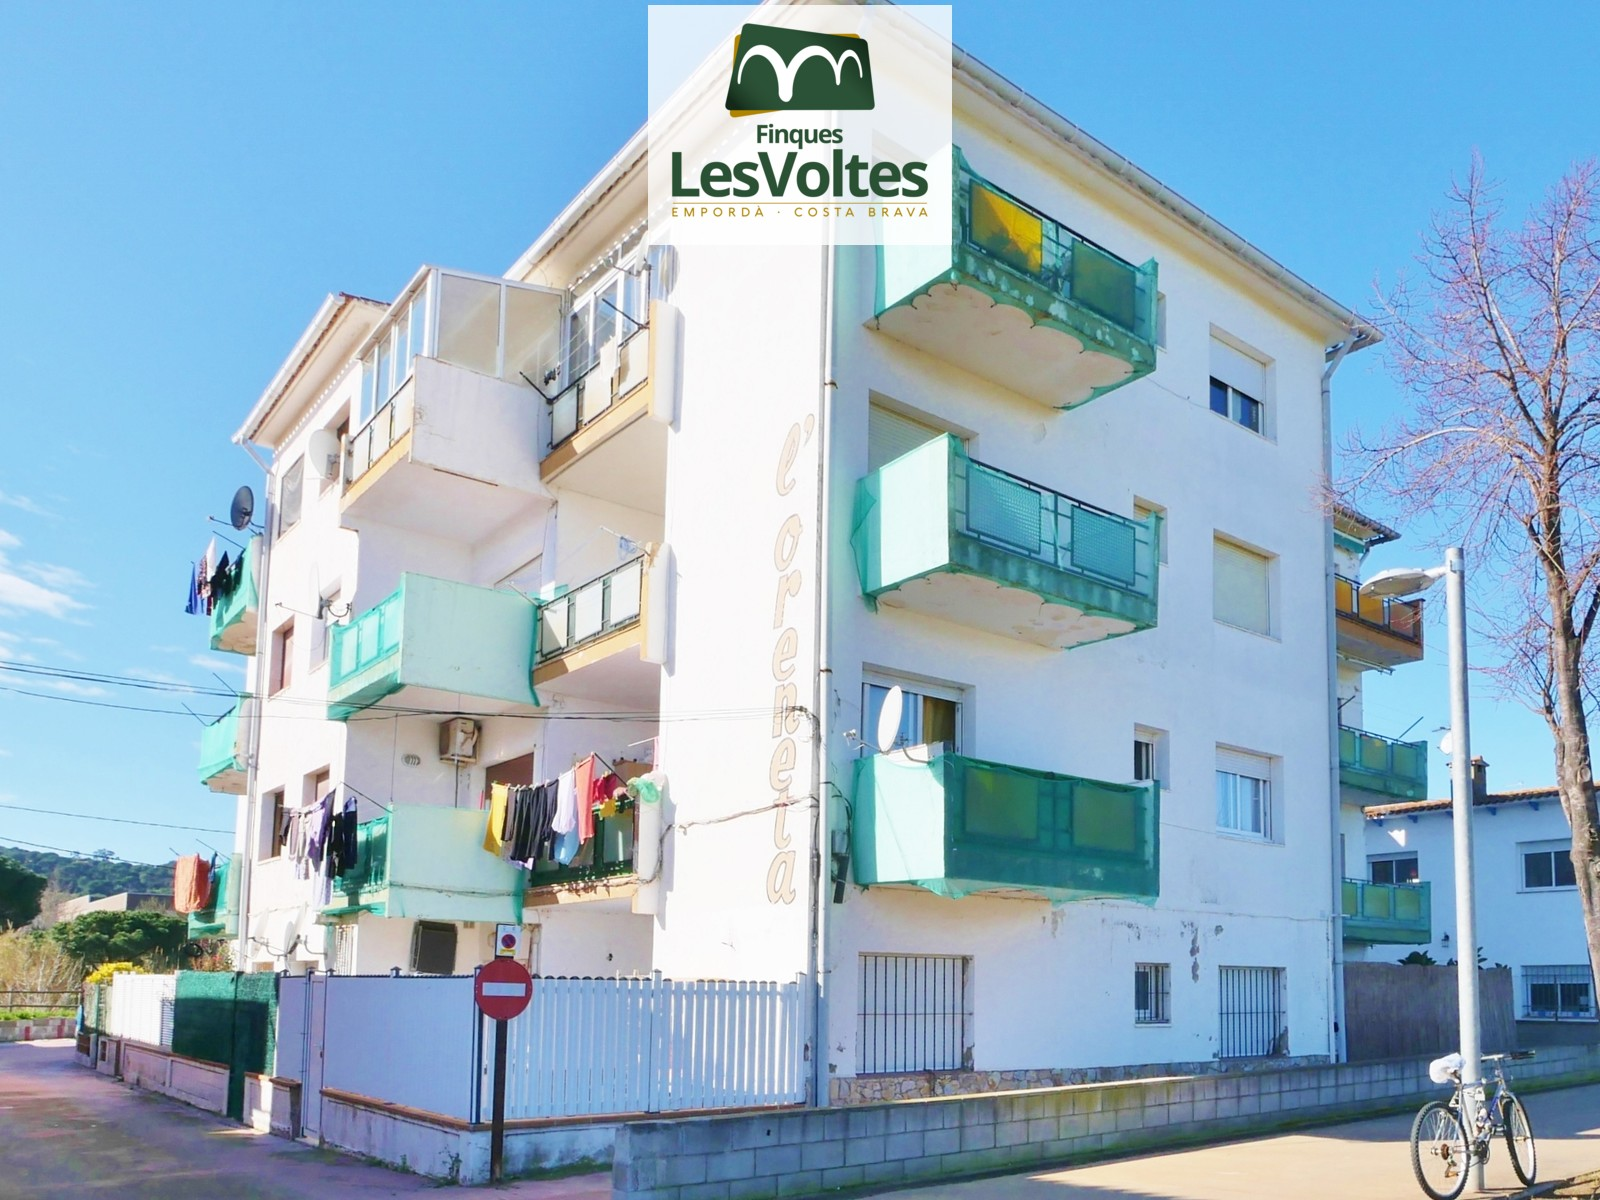 2 BEDROOM APARTMENT WITH TERRACE FOR SALE IN CALONGE. GOOD SITUATION